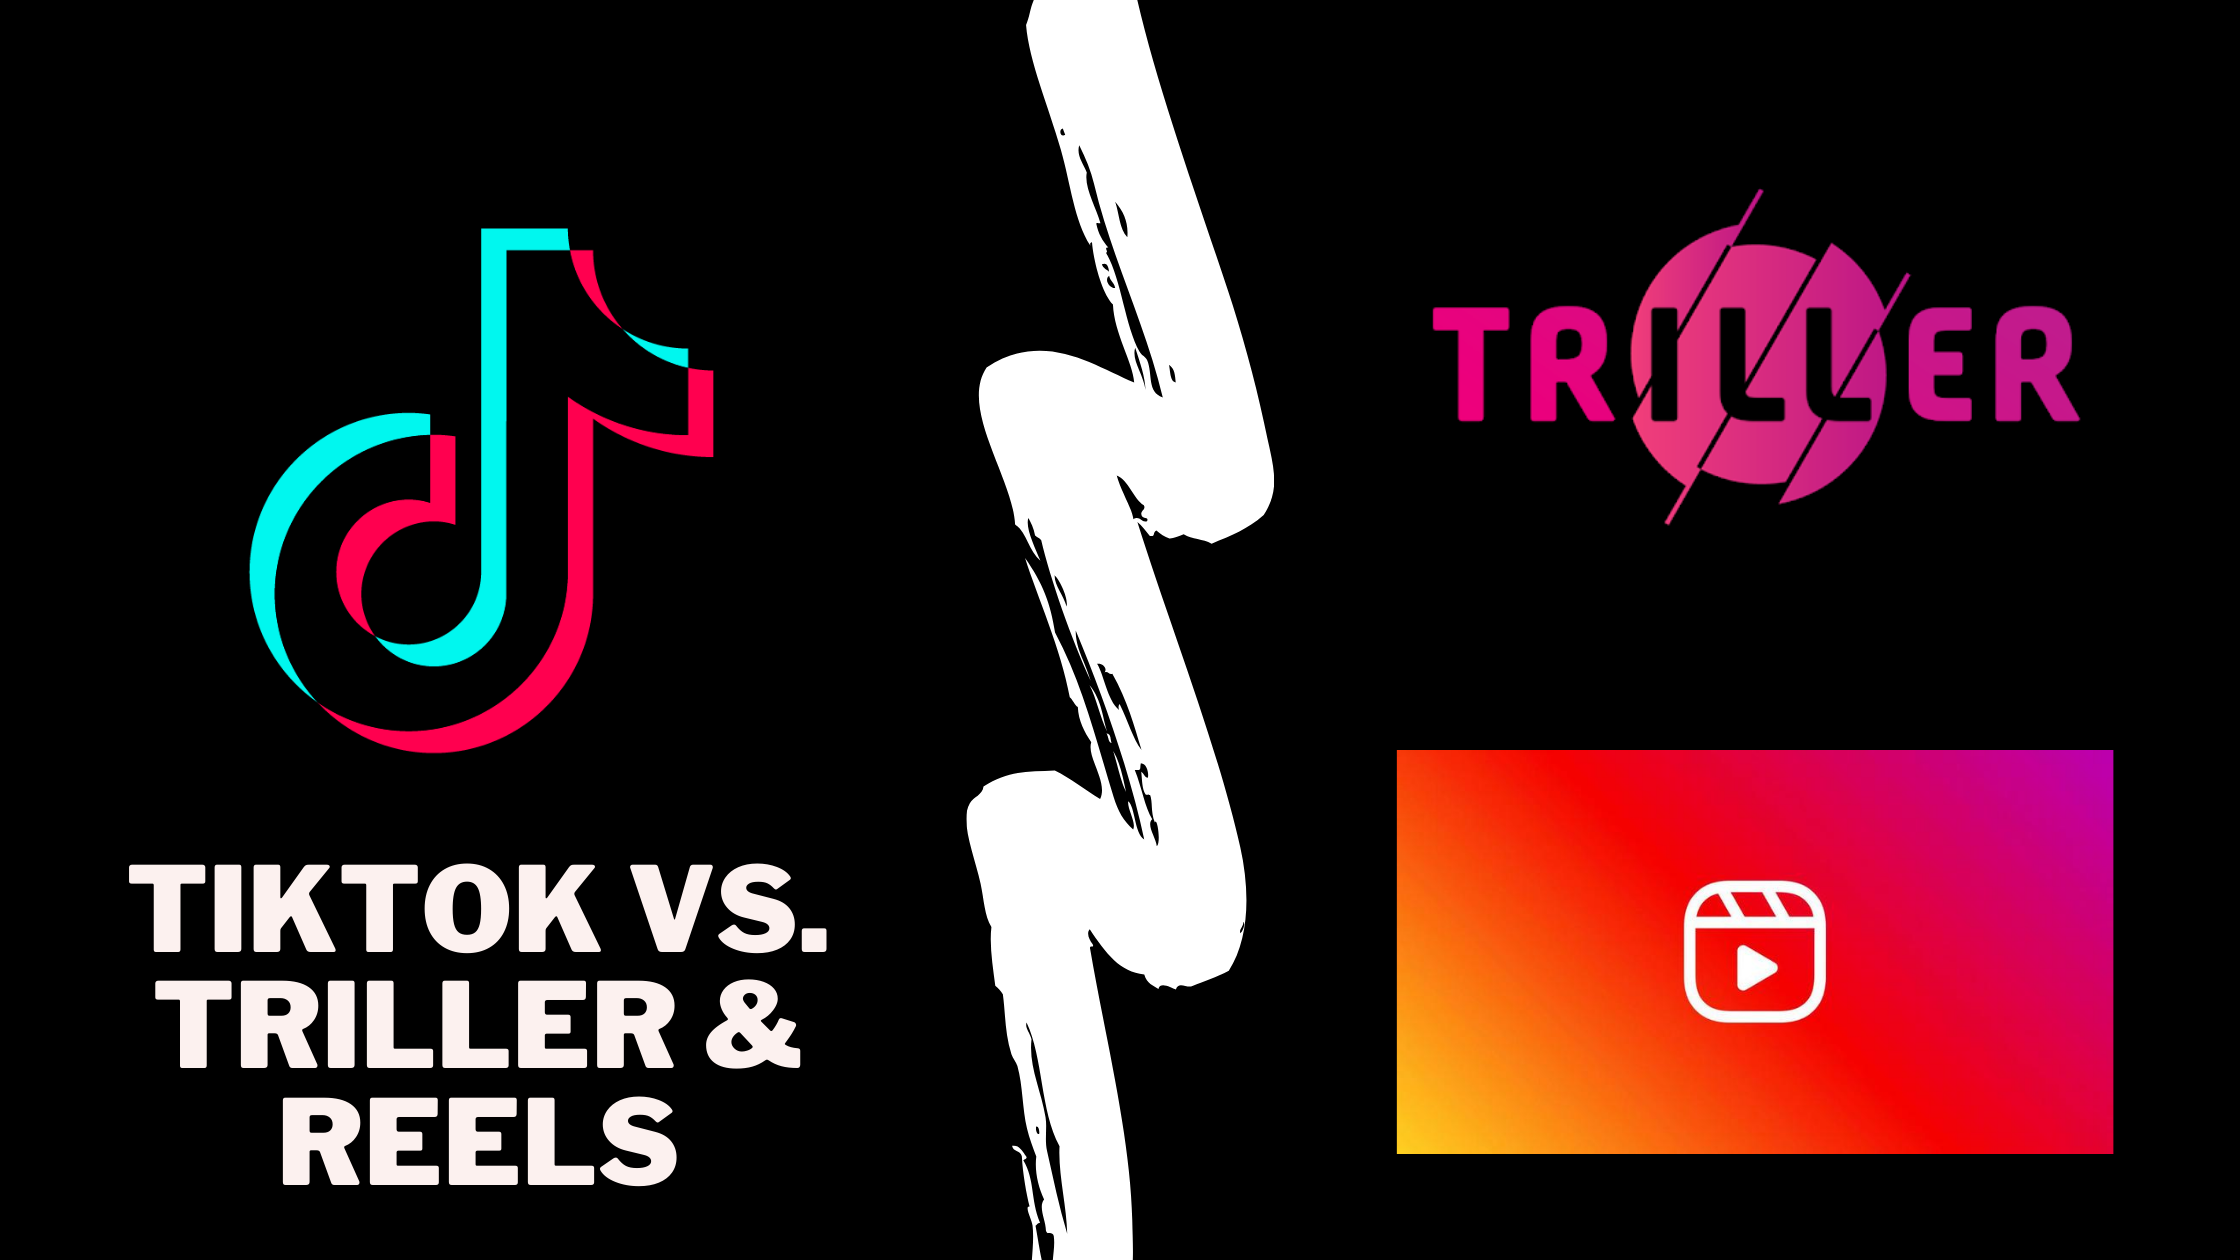 TikTok vs. Instagram Reels And Triller: What Are The Key Differences?